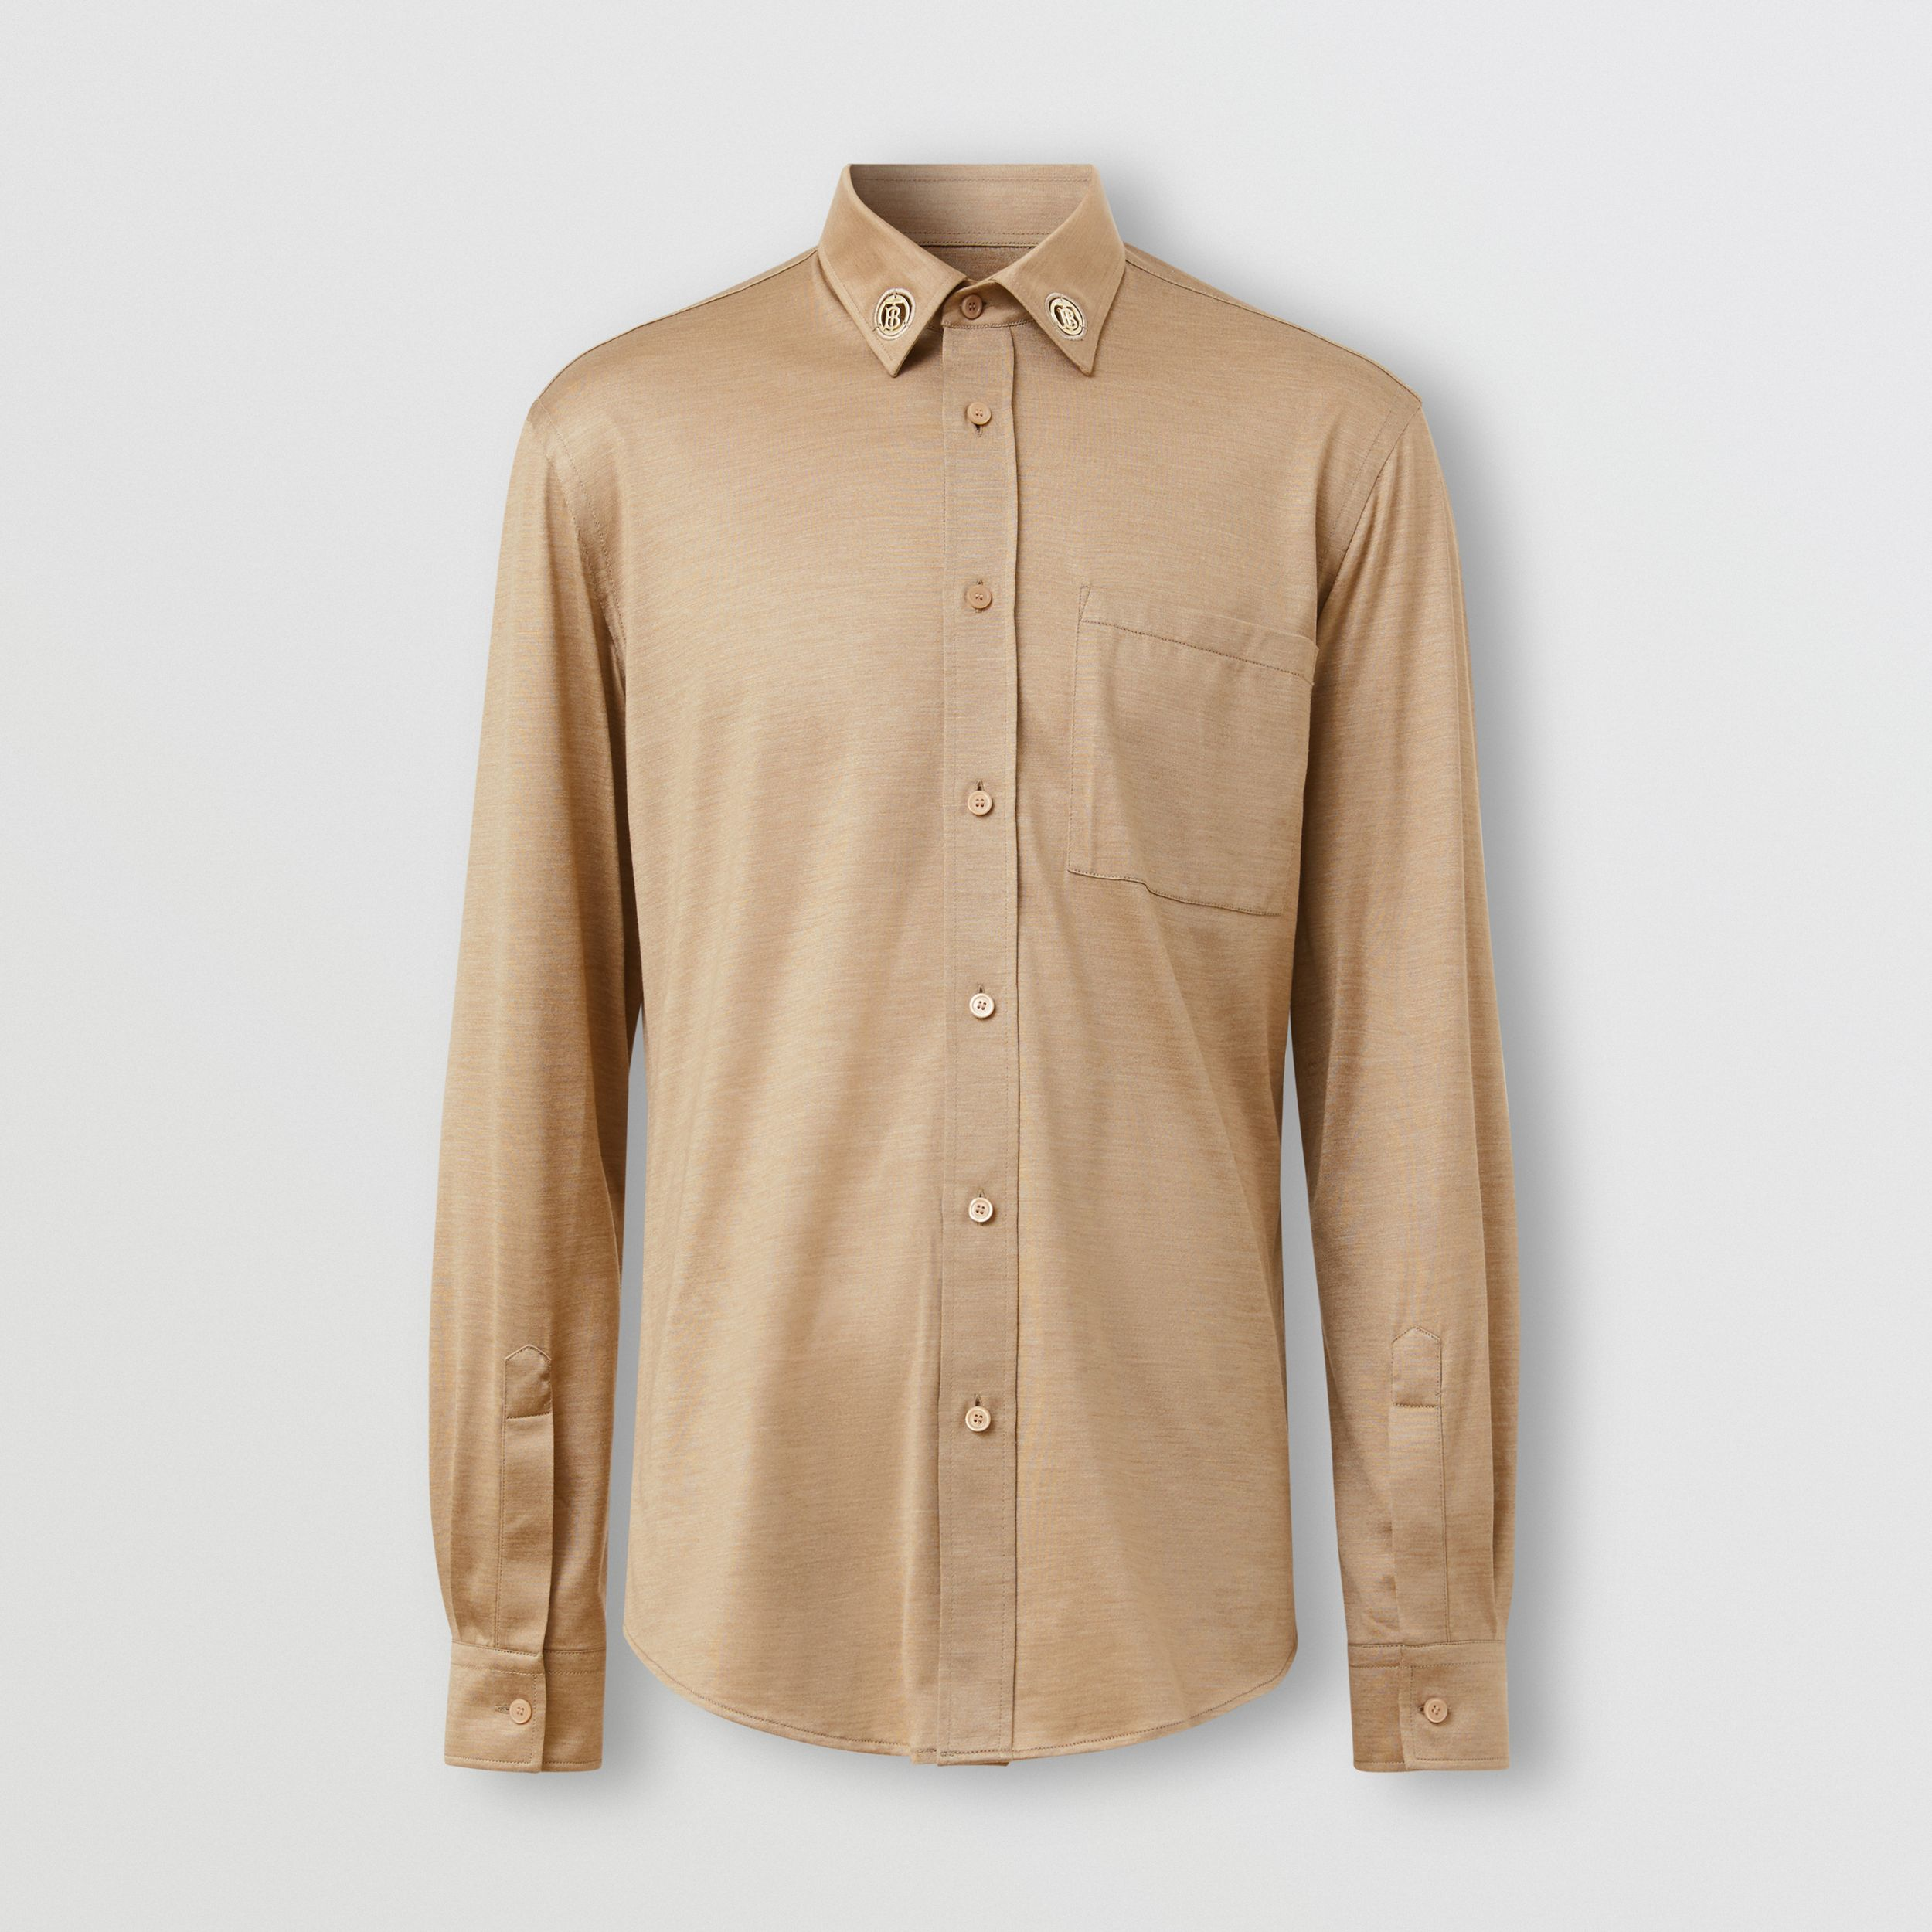 Classic Fit Monogram Motif Silk Jersey Shirt in Soft Fawn | Burberry - 4